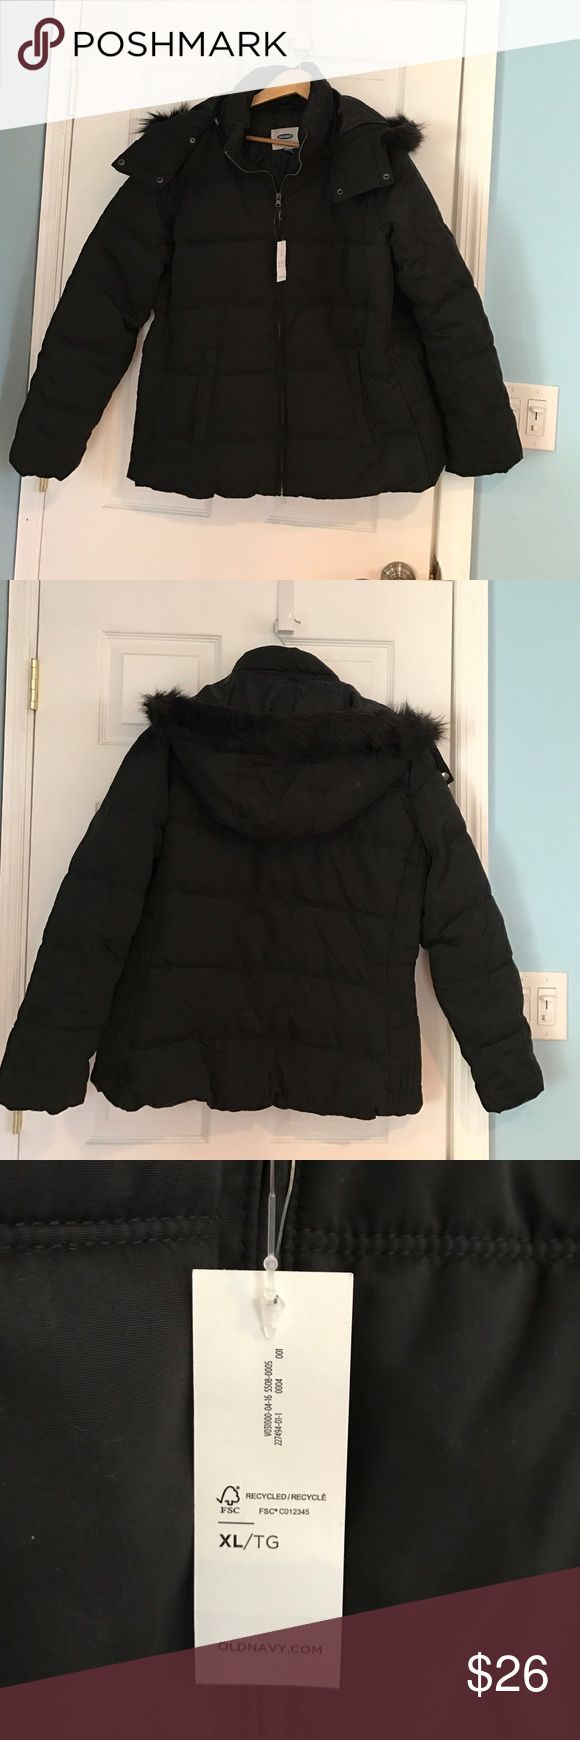 Old Navy NWT frost free hood jacket Old Navy Frost Free Hooded jacket new with tags size XL. Hood is trimmed with black faux fur and is removable. Old Navy Jackets & Coats